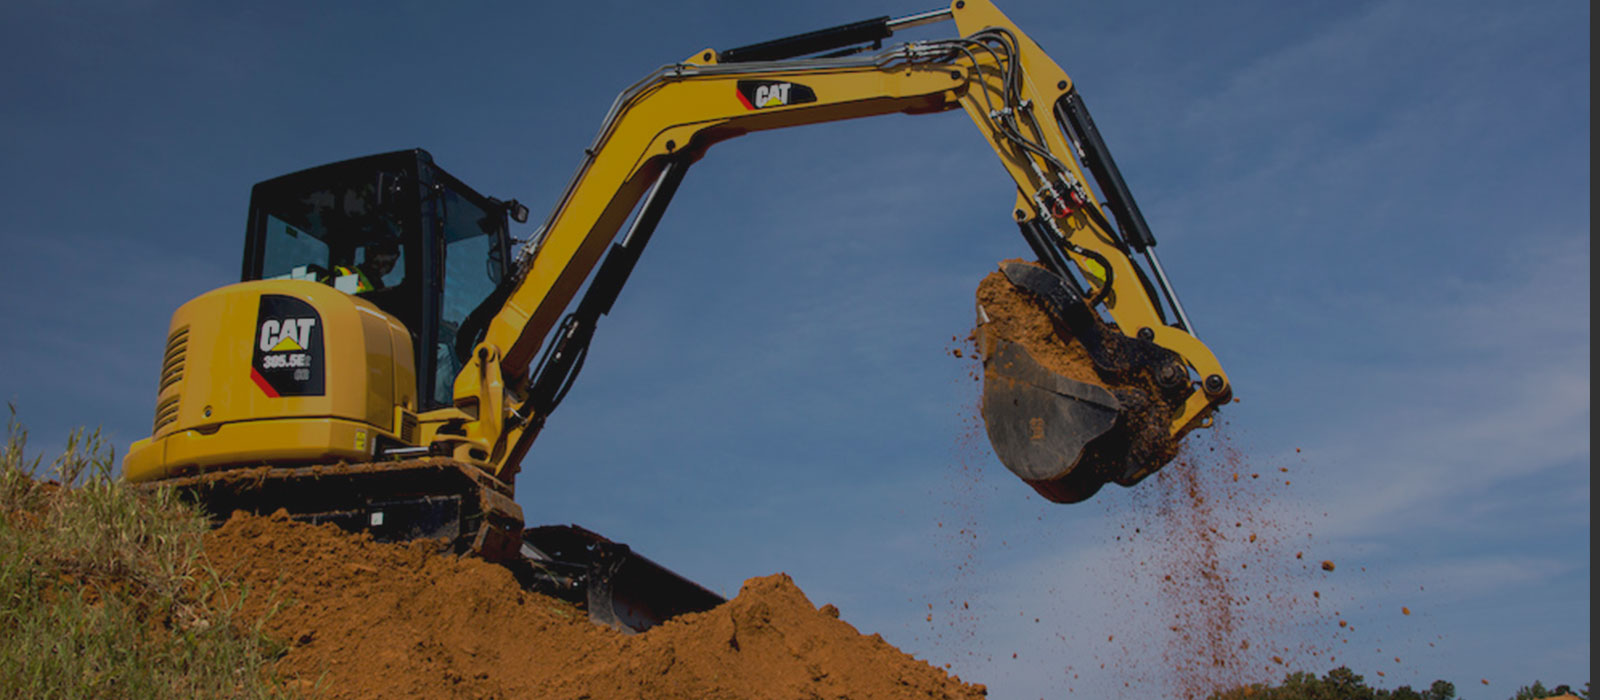 Backhoe Digging Dirt